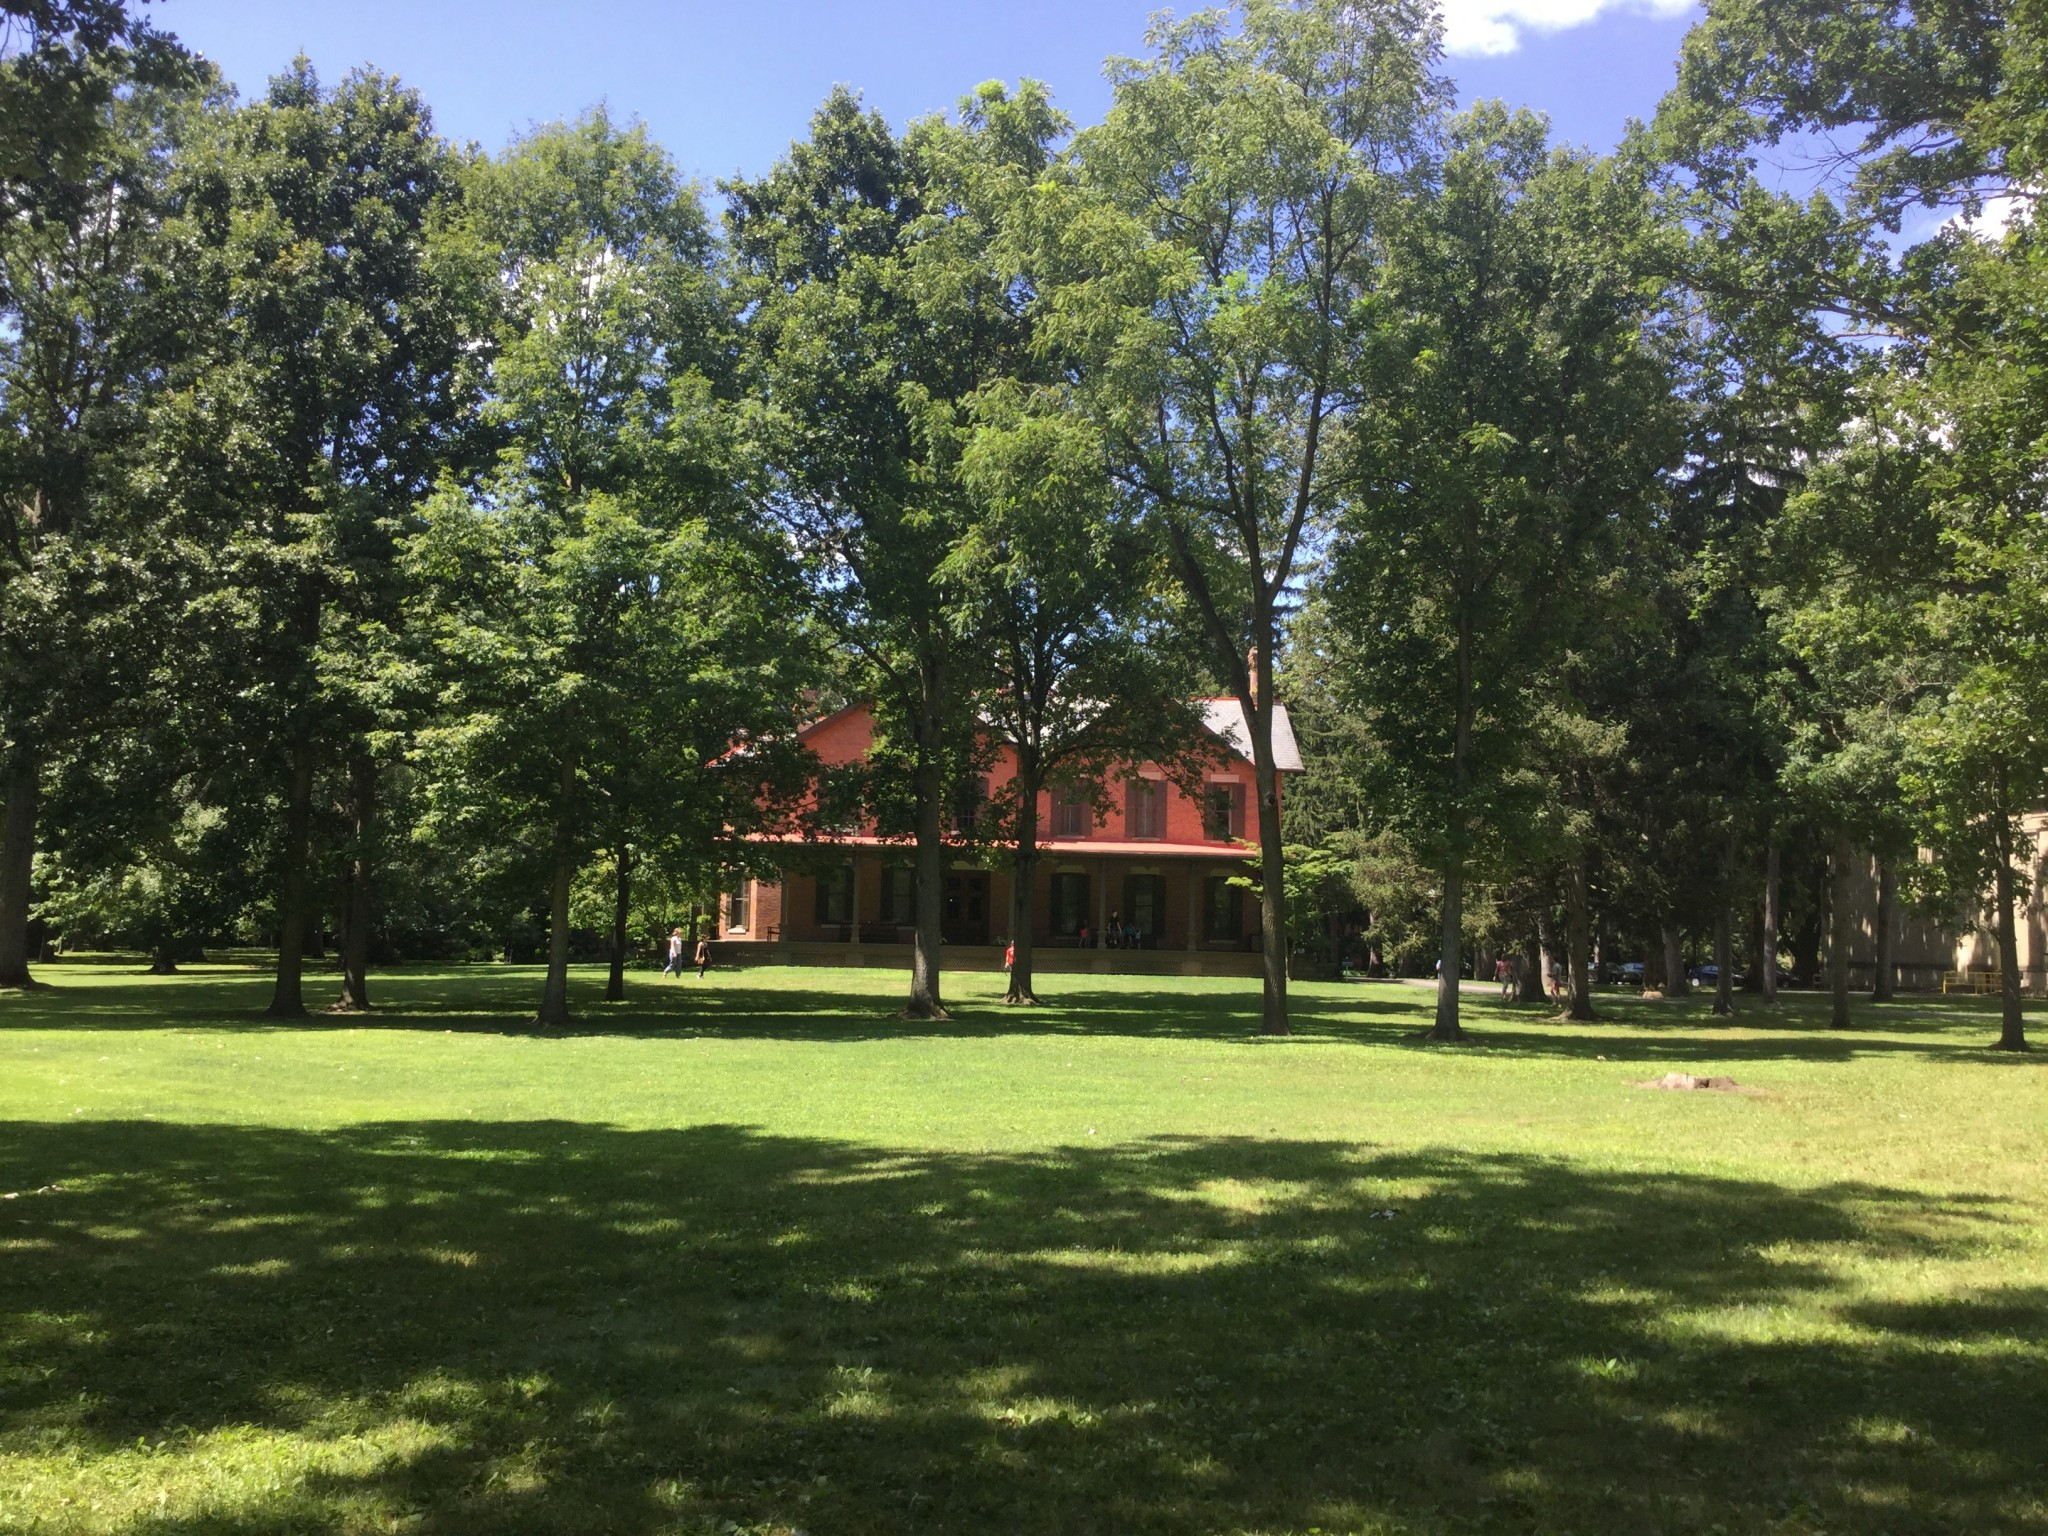 Featuring more than 1,700 trees, Spiegel Grove, the grounds of the Hayes Presidential Library & Museums, has been designated an arboretum. (Submitted photo)